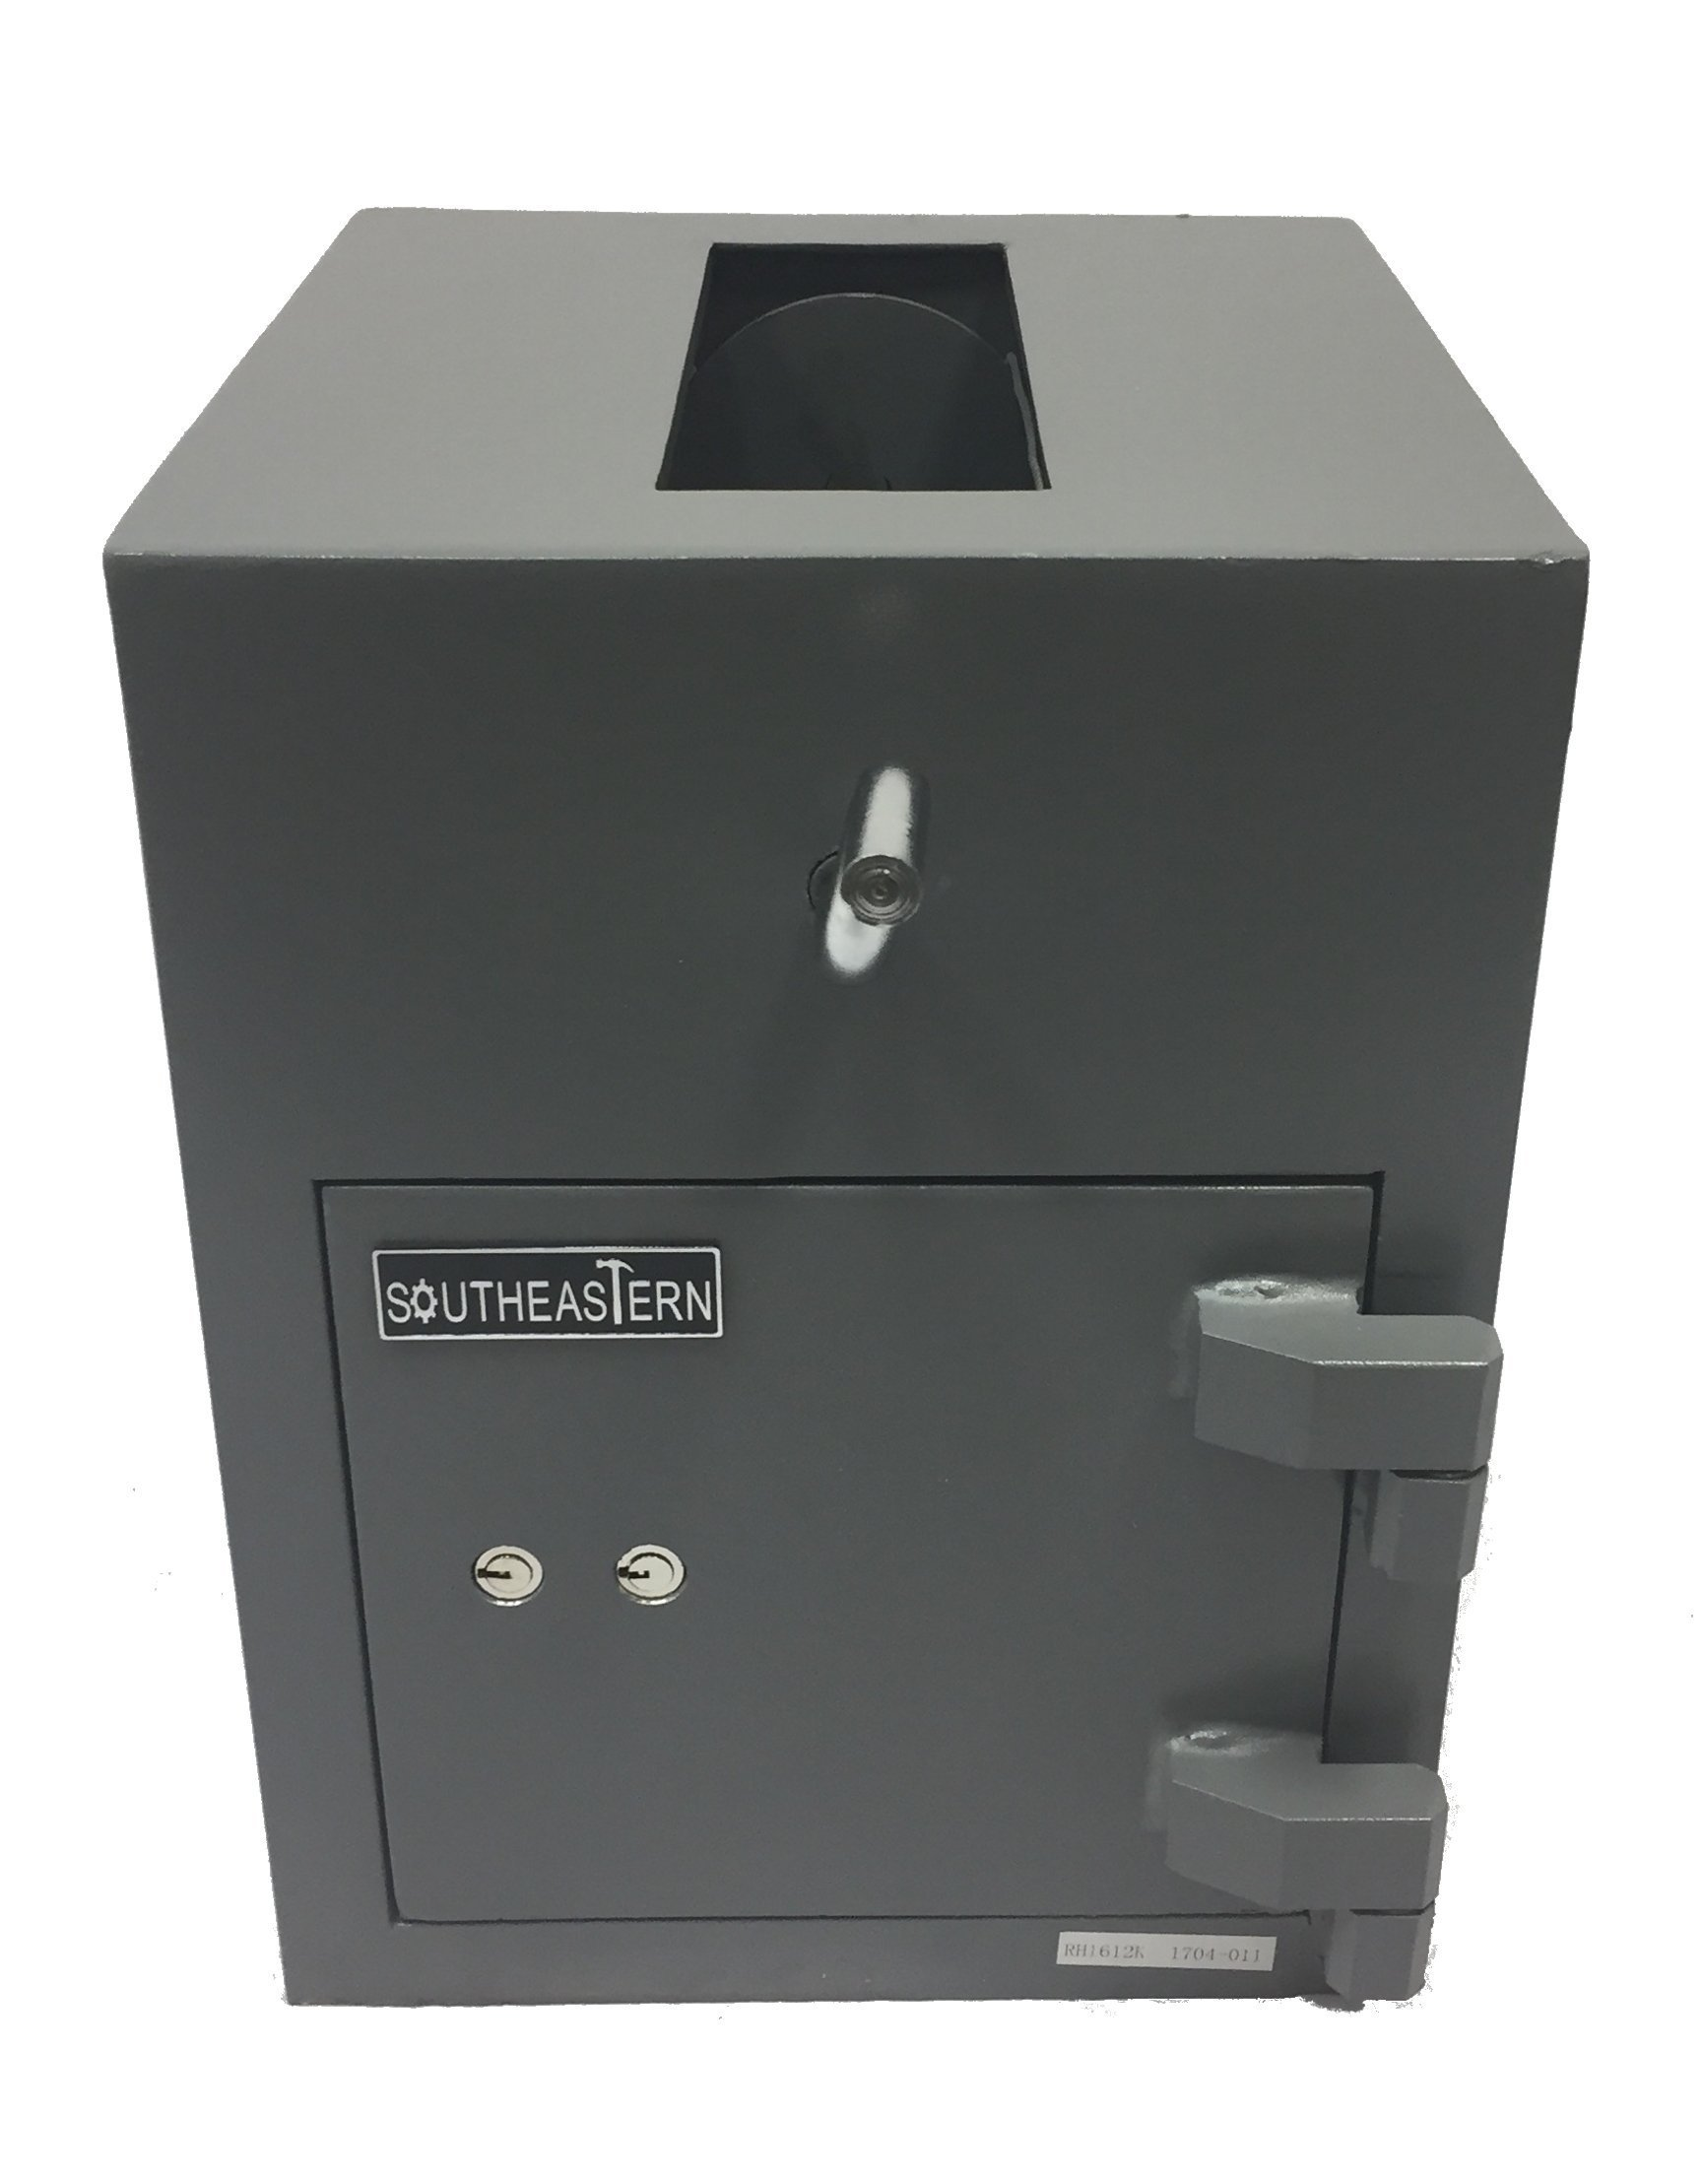 SOUTHEASTERN Top Loading Drop Depository Safe with dual key lock